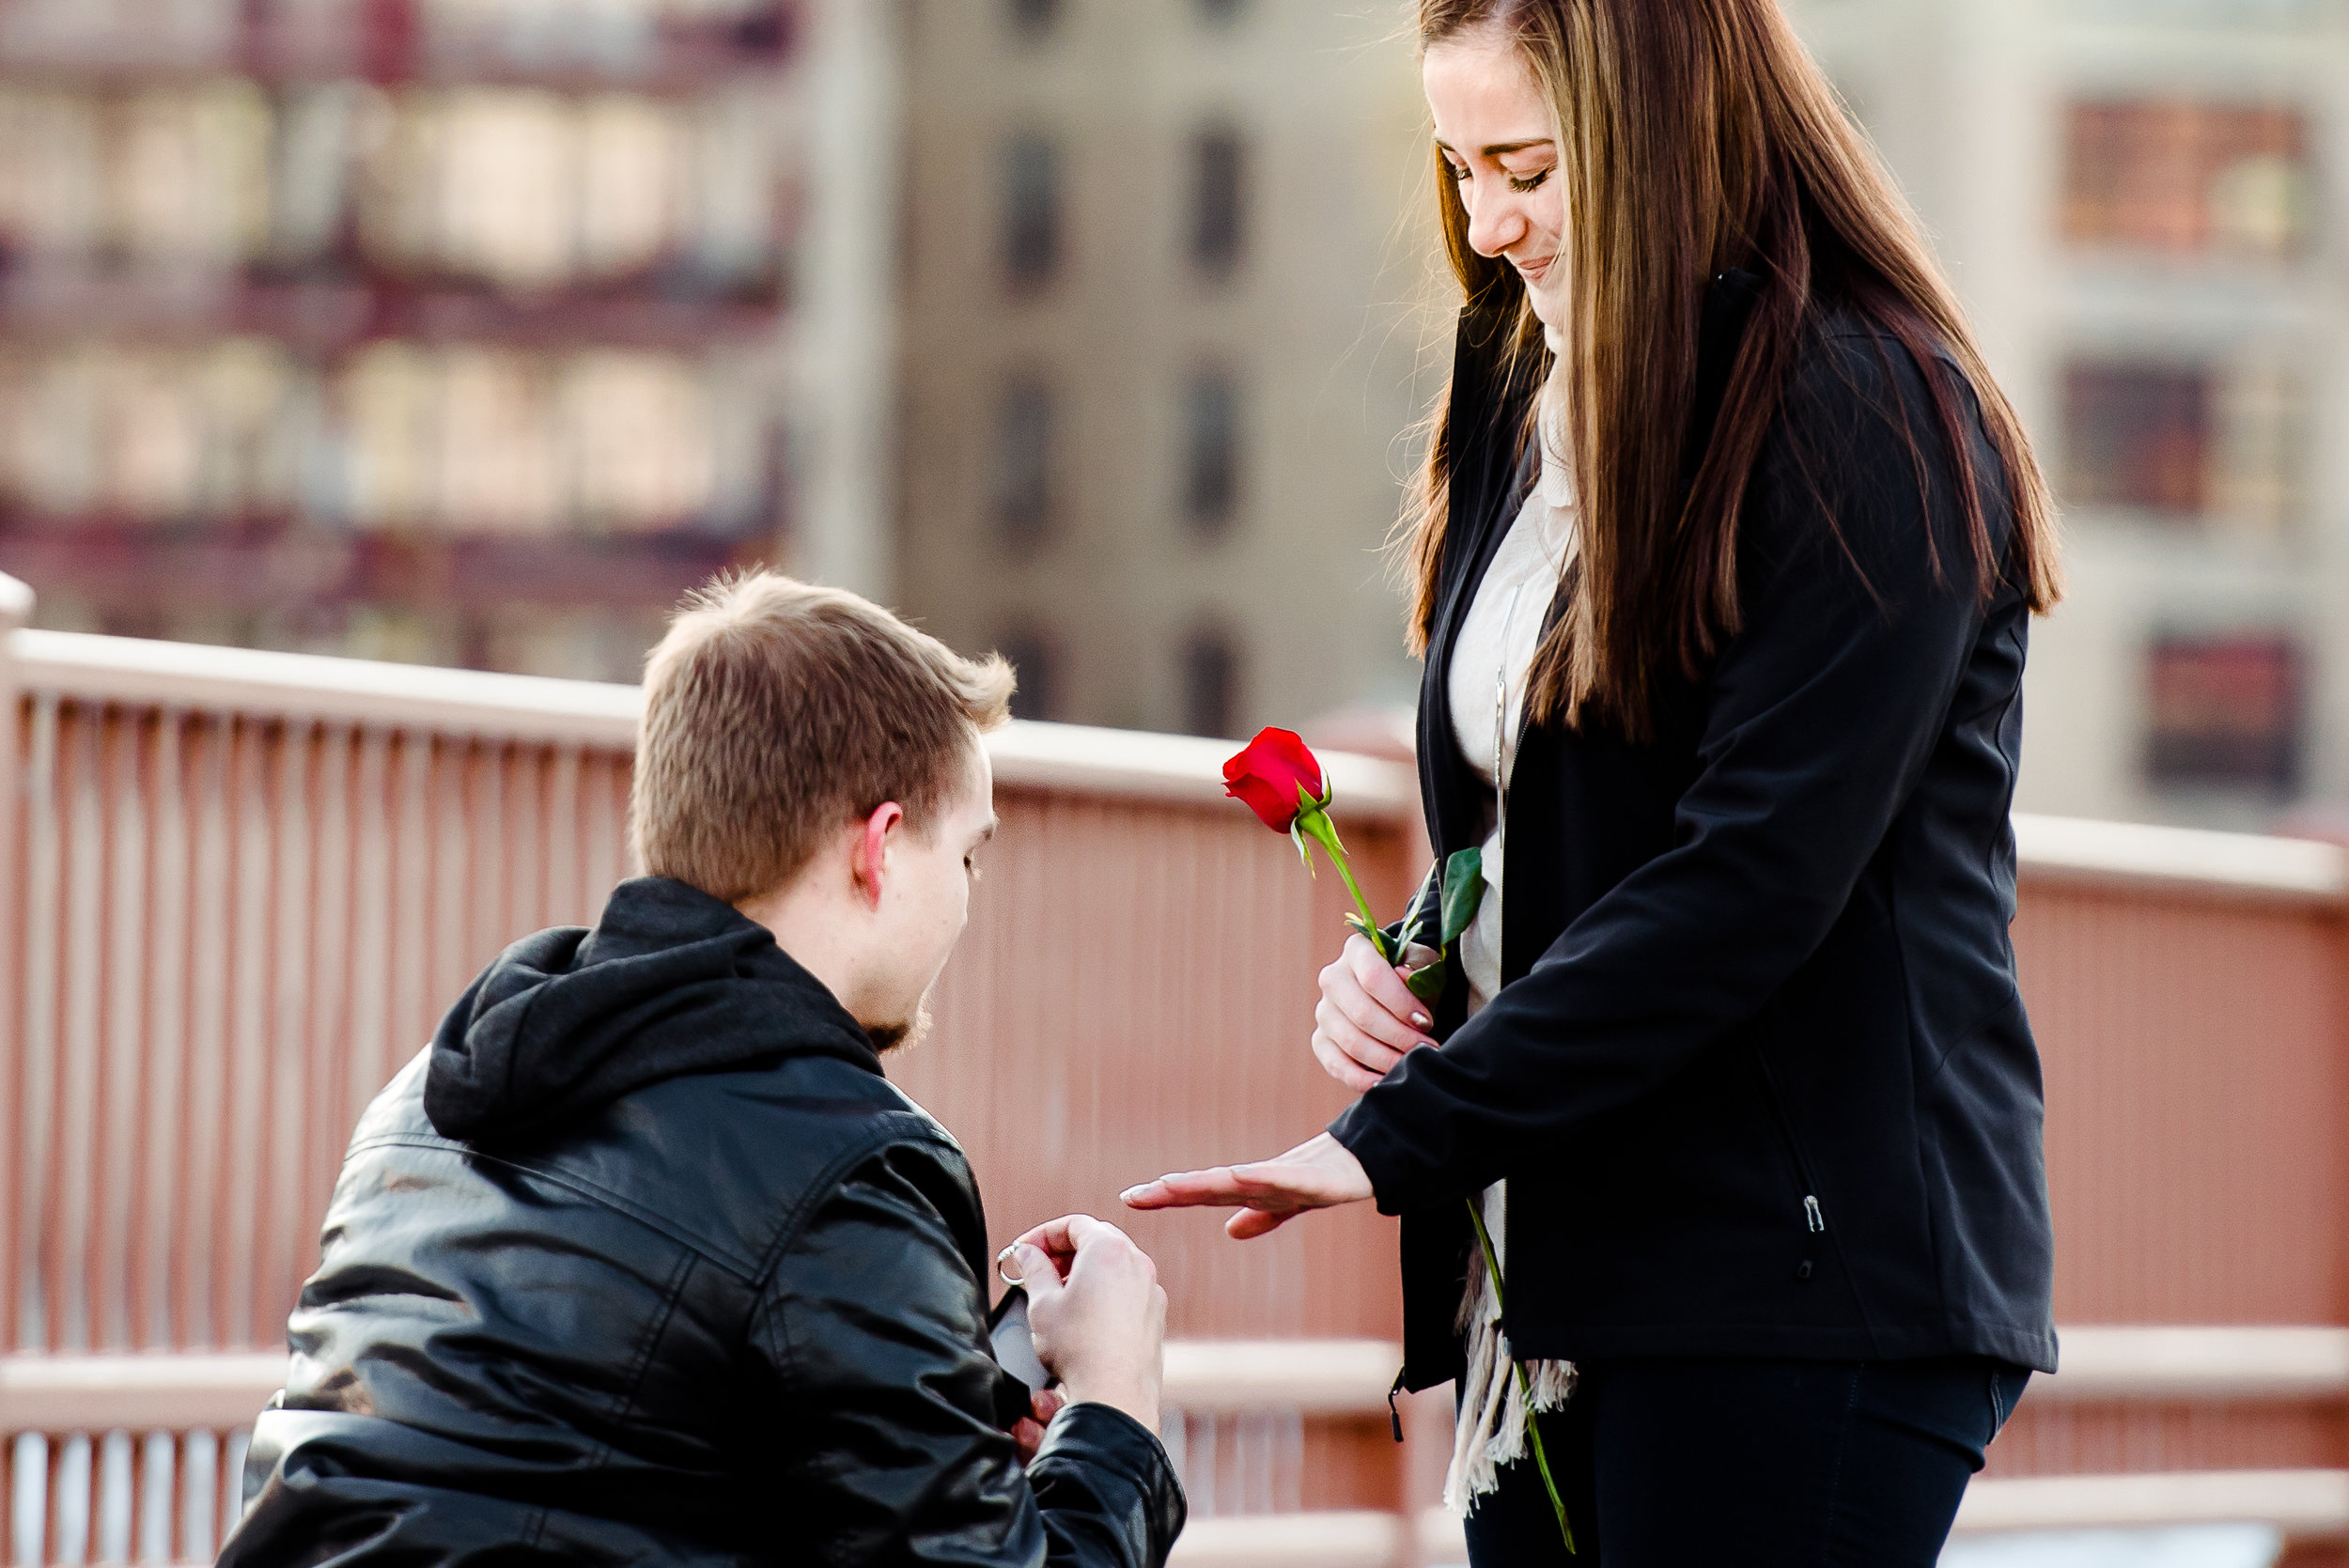 Minneapolis Stone Arch Bridge Engagement - Surprise Proposal at Sunset in the Twin Cities, MN